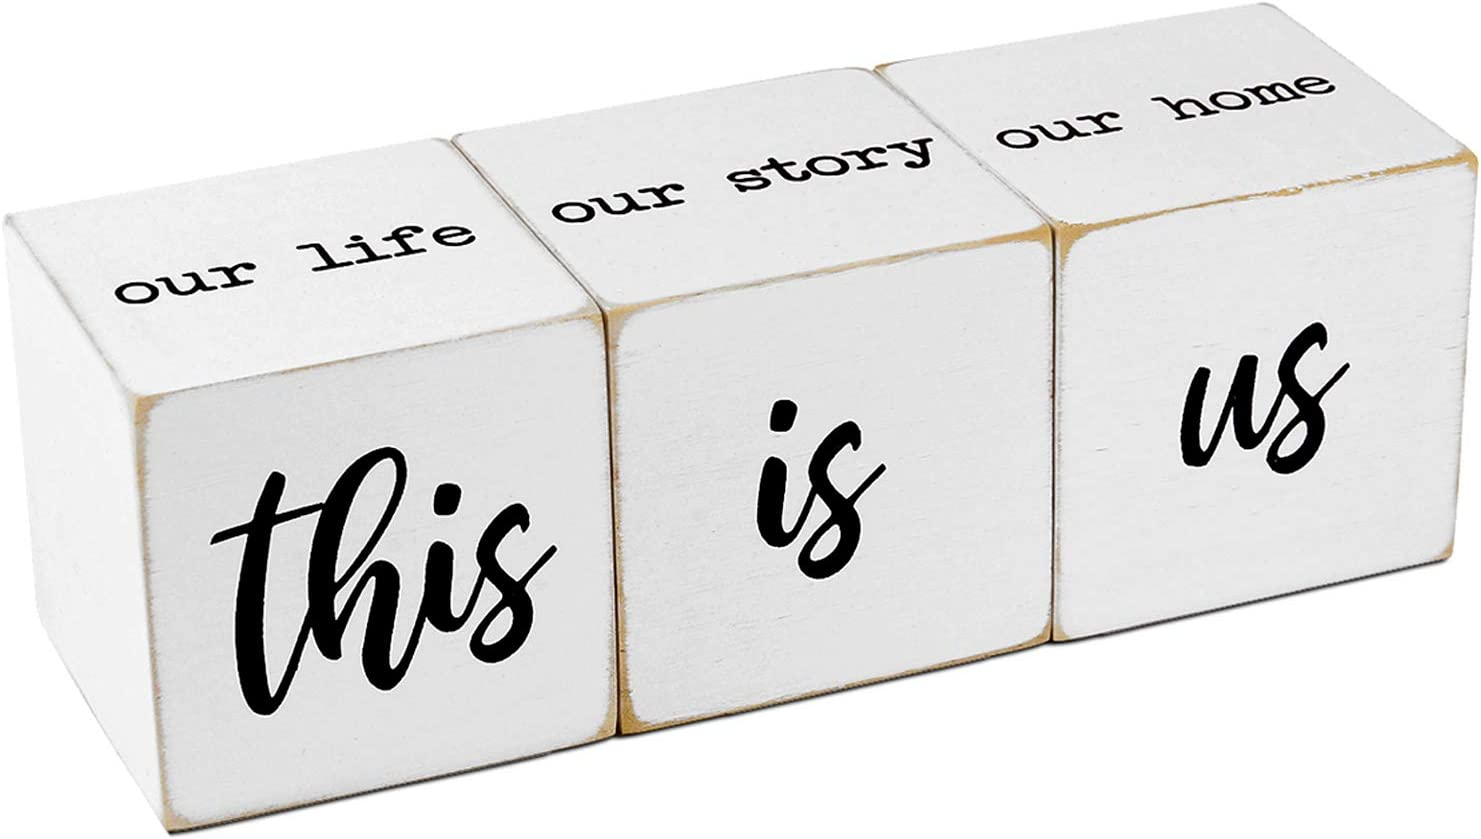 Wooden Farmhouse Table Top Decor-This is us&Our Life Our Story Our Home Letter Blocks Decor, 2 Sides Vintage Rustic Tiered Tray Decorations, Modern Farmhouse Decor Signs for Living Room Home Shelves